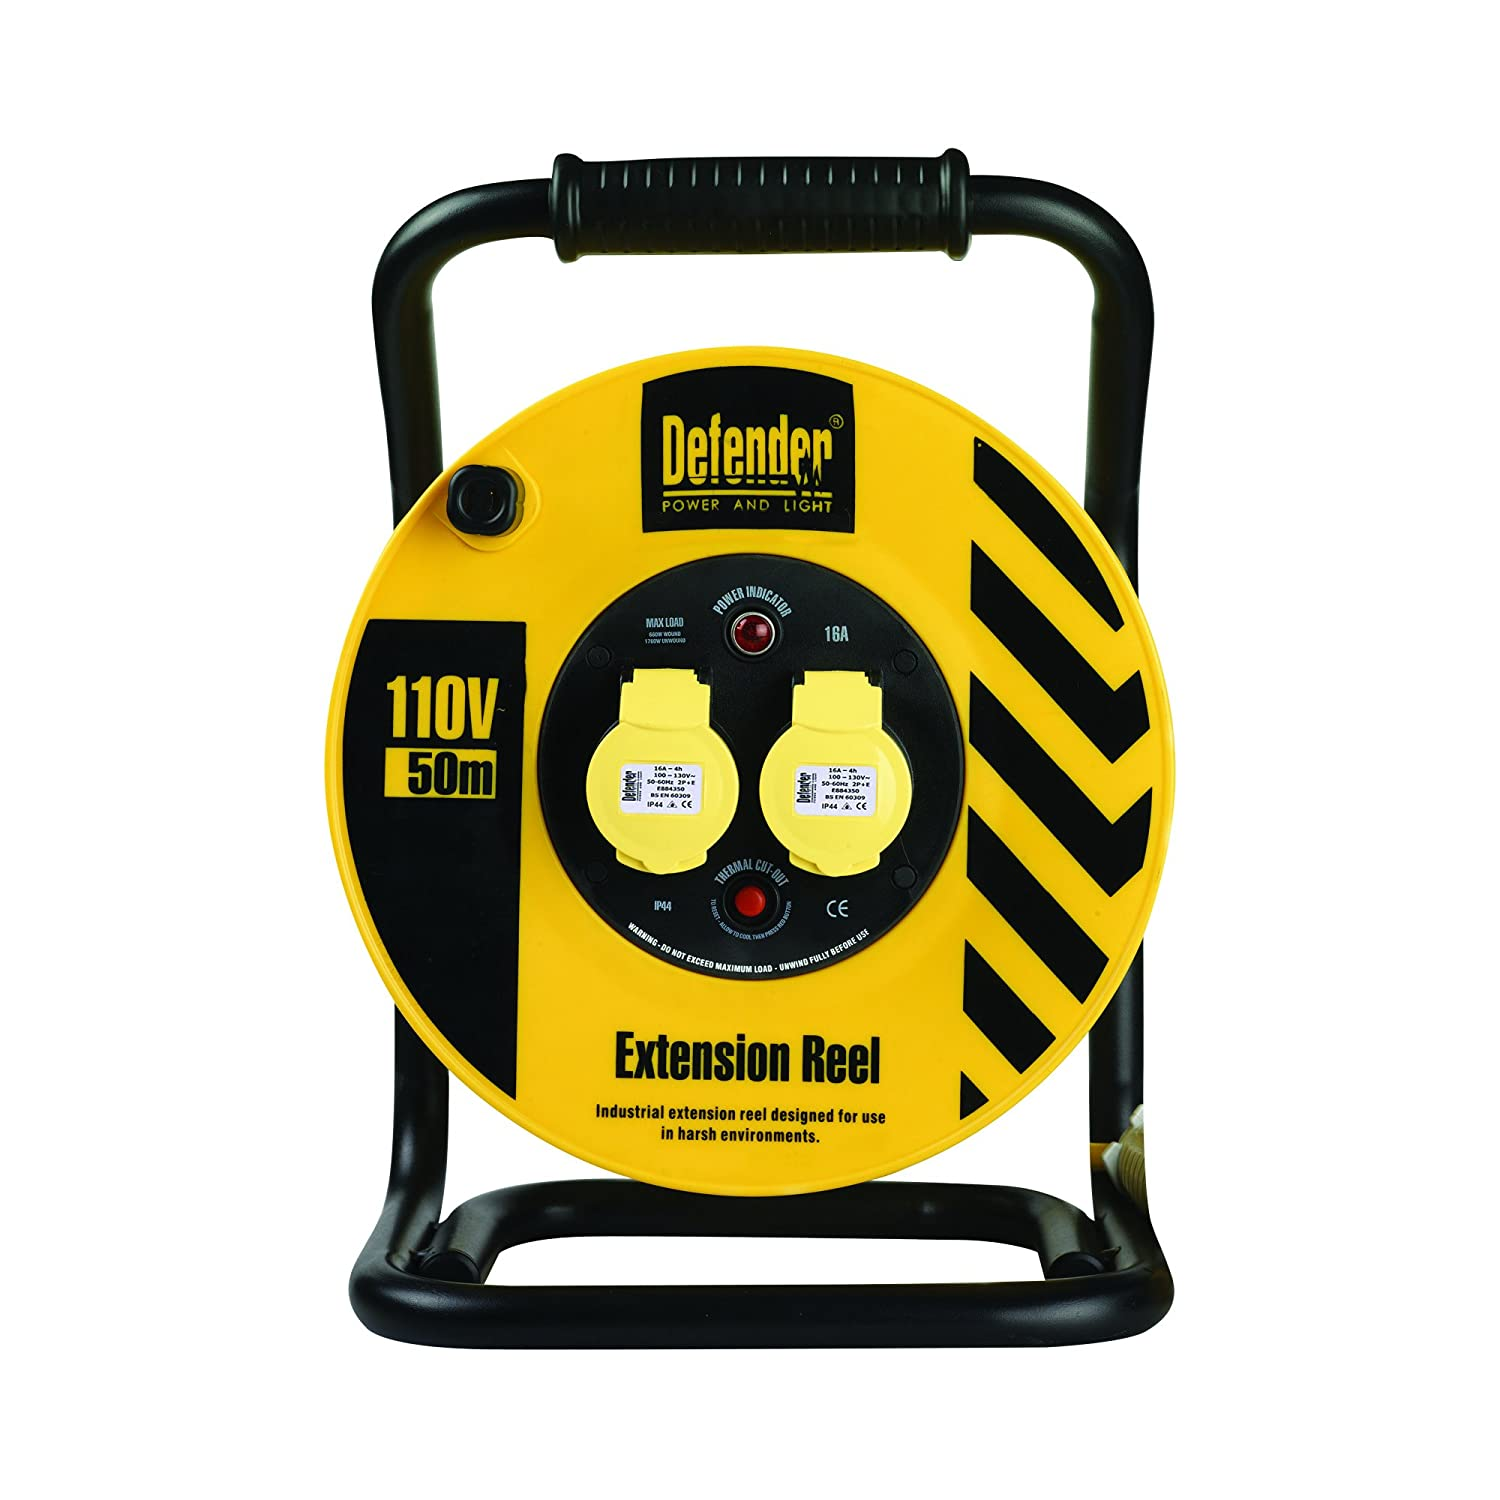 Defender E86510 50M Industrial Trade Cable Reel-16A 2 Way 2.5mm 110V, 110 V, Yellow